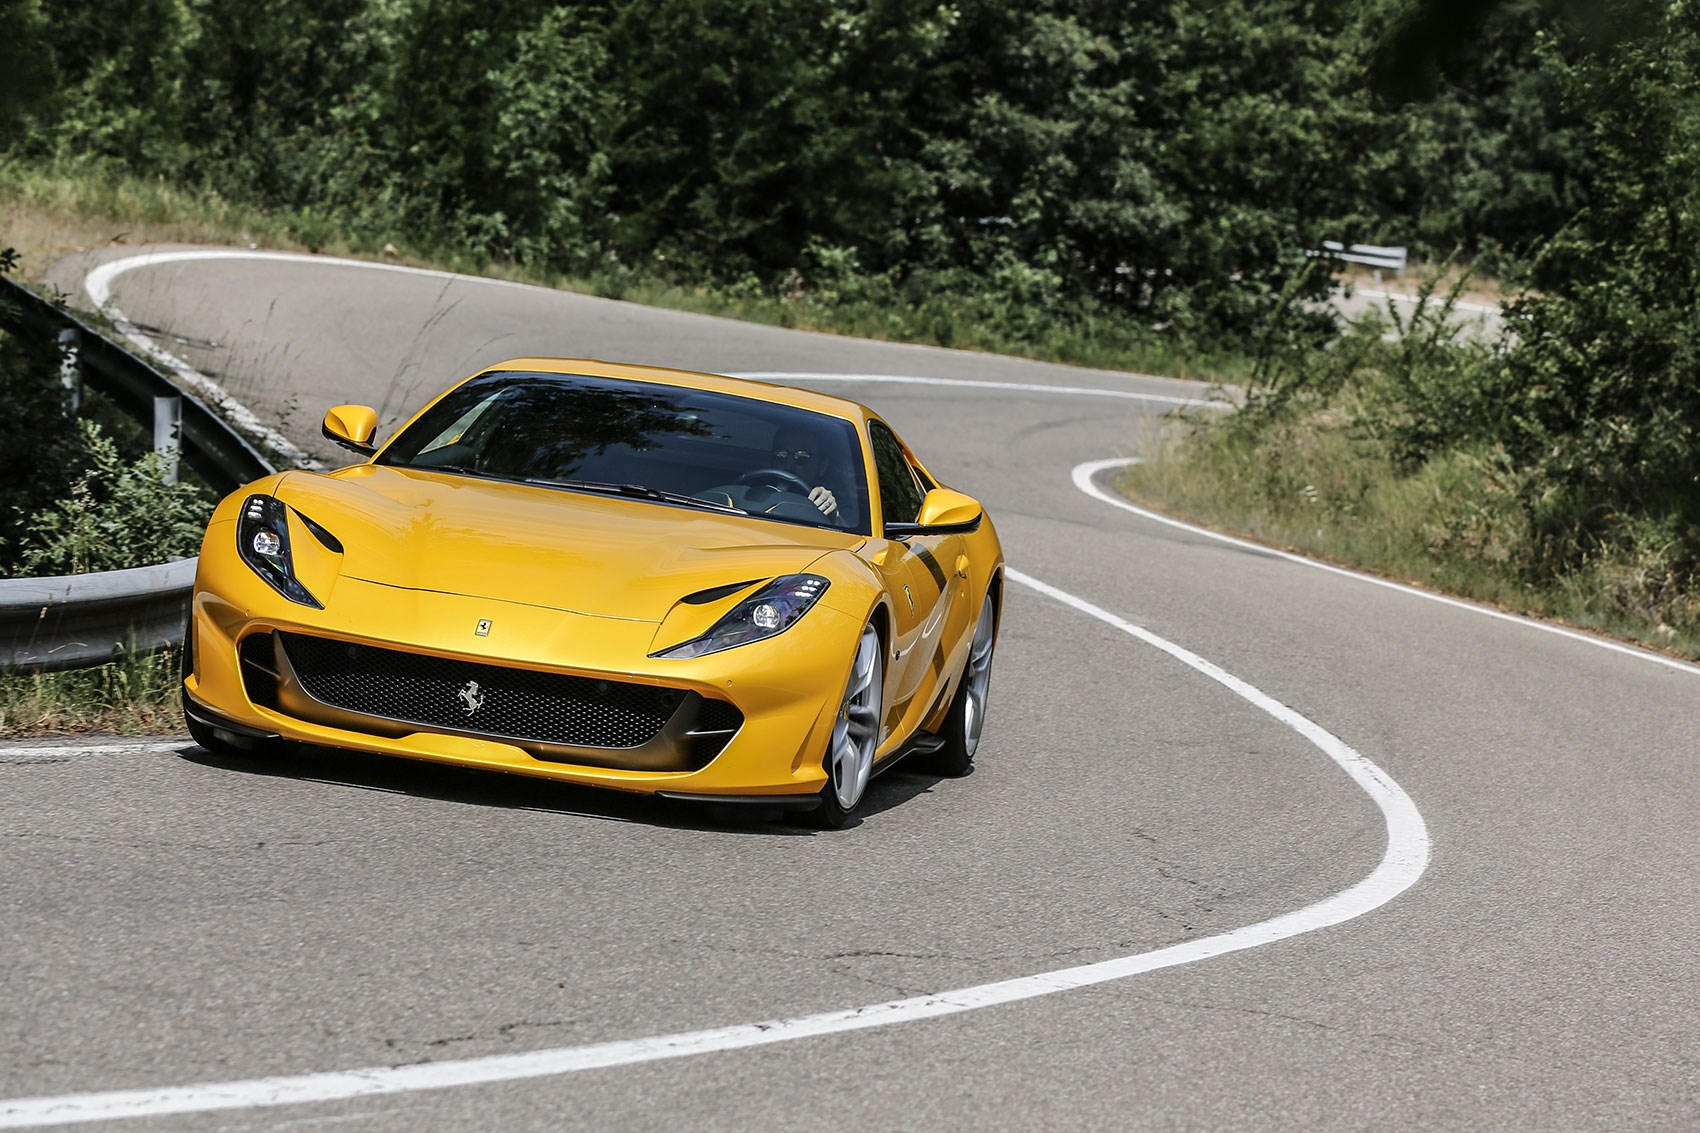 Hyundai Lease Deals >> Ferrari 812 Superfast (2017) review by CAR Magazine